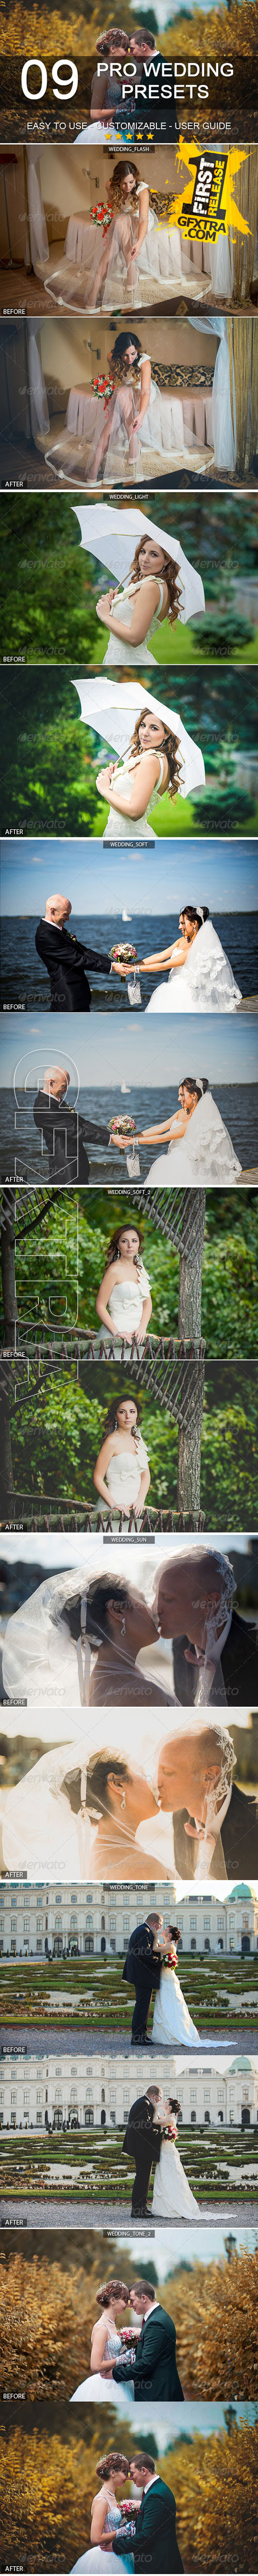 GraphicRiver - 9 Pro Wedding Presets 6372104